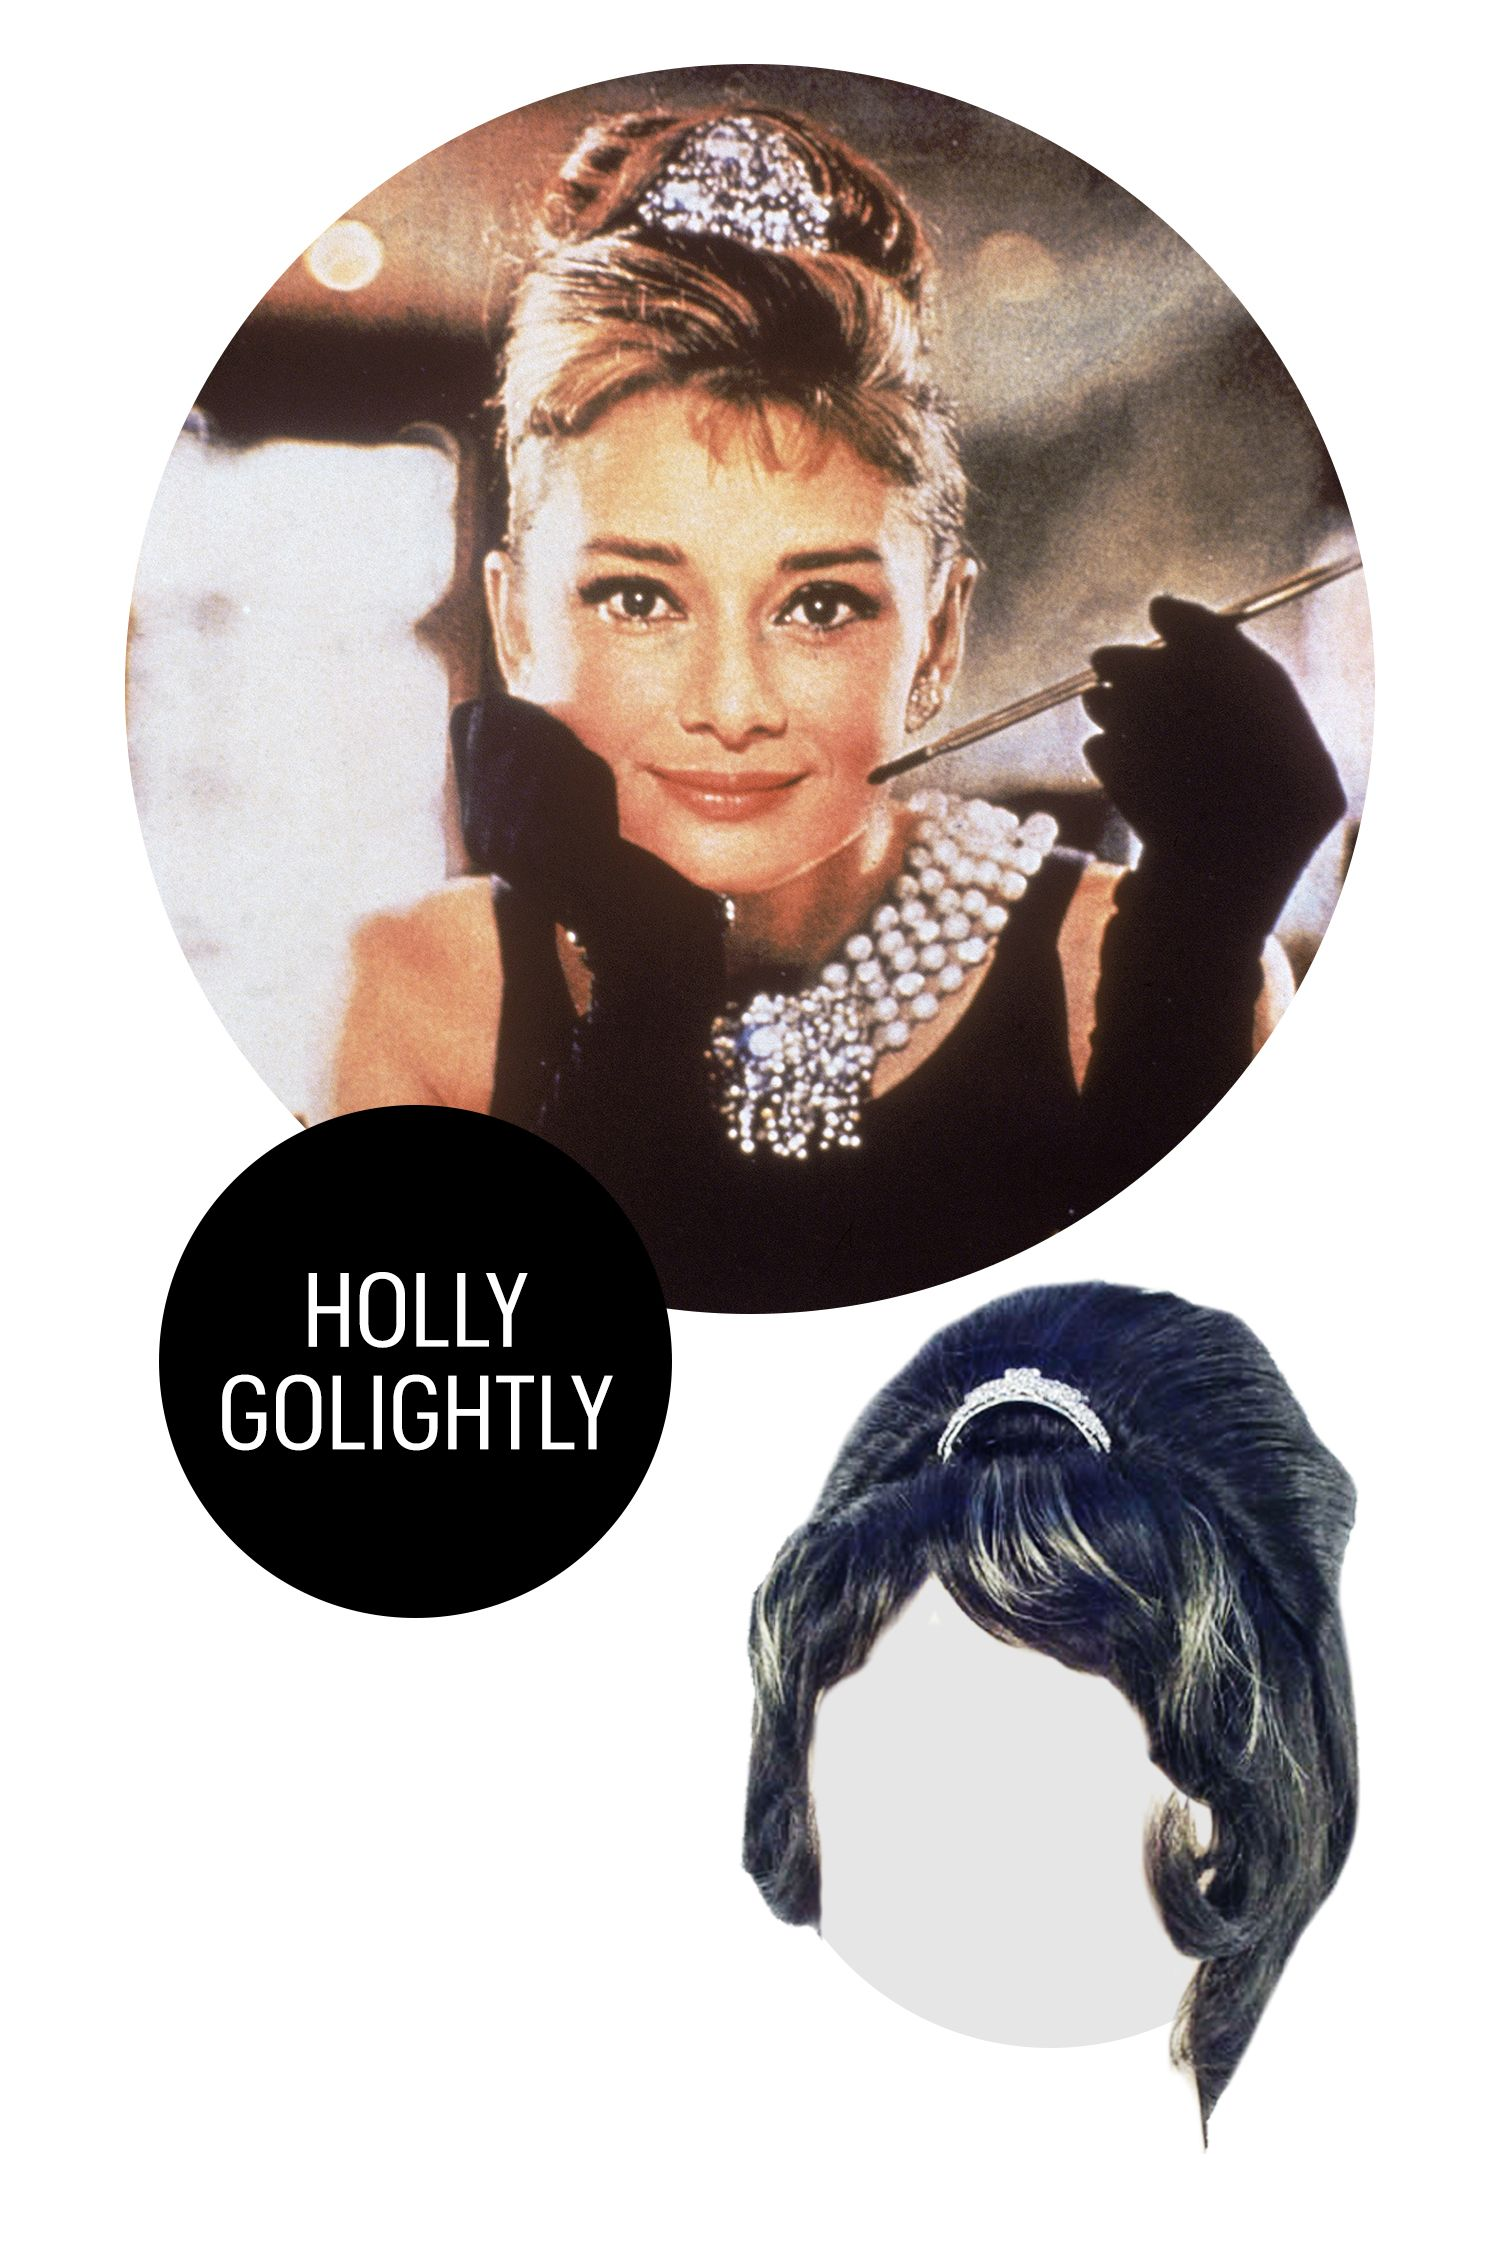 "<p>Golightly is the ultimate girl about town, so instead of spending hours in the salon getting her <a href=""http://www.marieclaire.com/beauty/a9490/holly-golightly-costume-audrey-hepburn-style/"" target=""_blank"">signature blonde highlights</a> and perfectly-coiffed bouffant, throw this little number on with an LBD and a string of pearls.</p><p>Holly GolightlyBreakfast at Tiffany's Wig, $31; <a href=""http://www.mycostumewigs.com/hollygolightly.html?utm_source=hollygolightly&utm_medium=shopping%2Bengine&utm_campaign=googleproducts&gclid=CLXi2vnQ-8cCFYgUHwodq7QF1A"" target=""_blank"">mycostumewigs.com</a>.<br></p>"